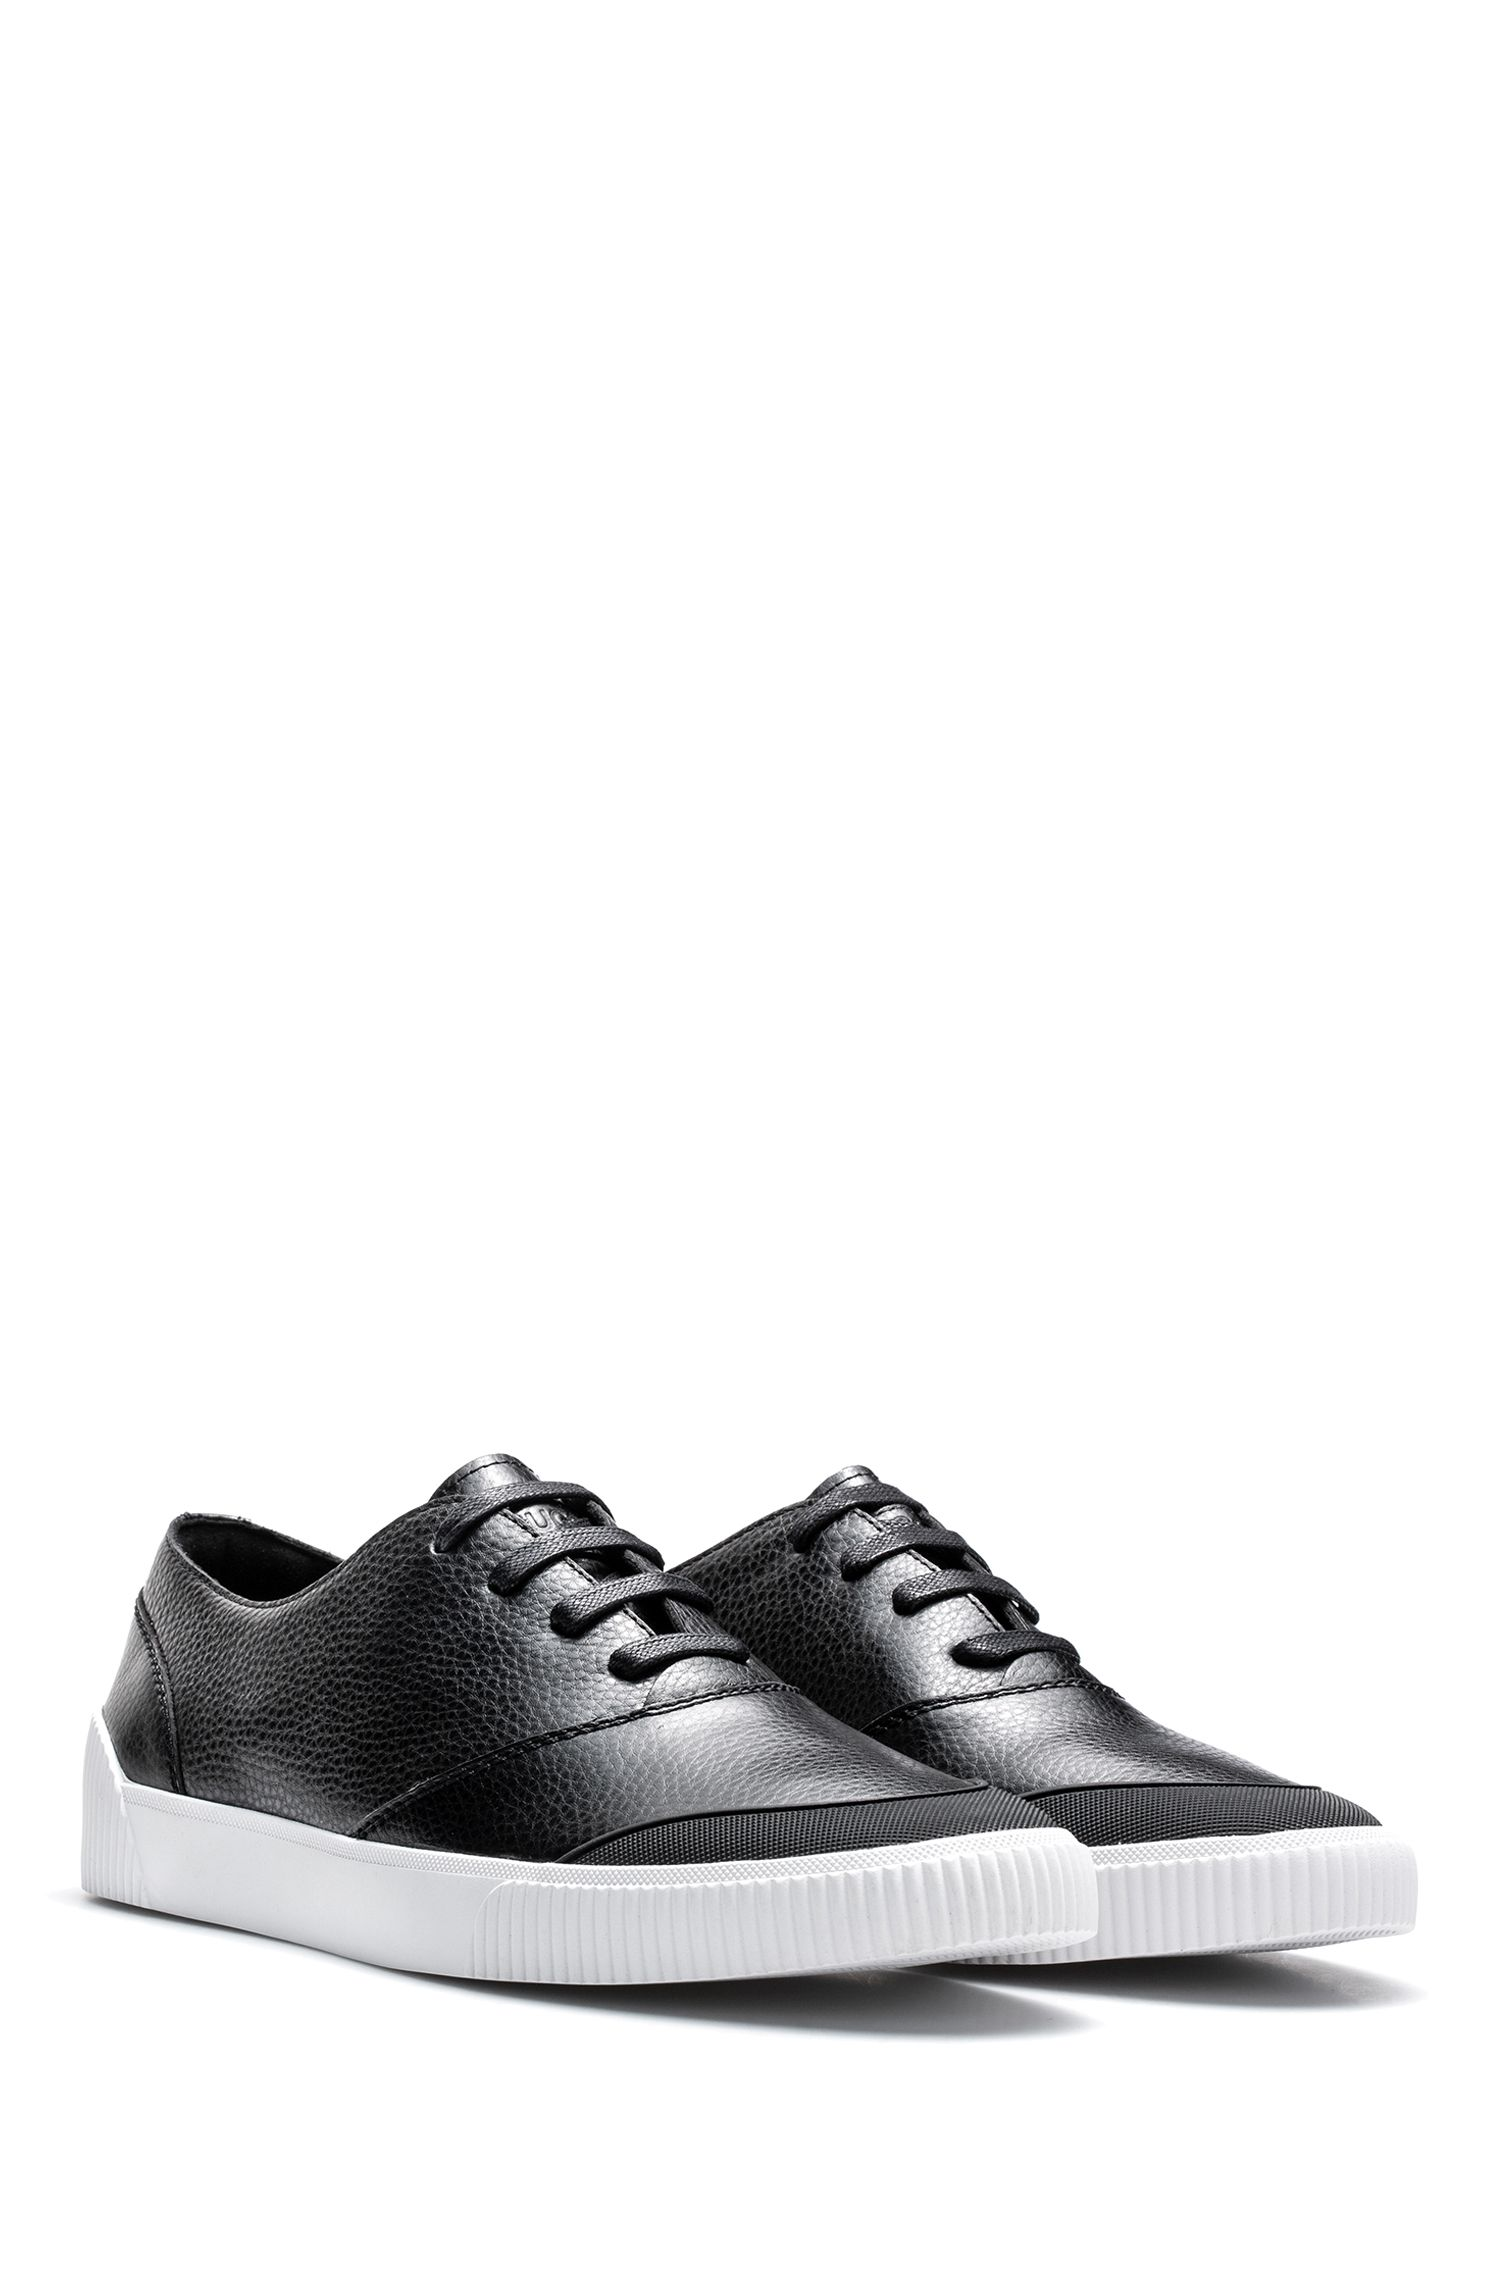 Sneakers low-top stile tennis in pelle di vitello martellata